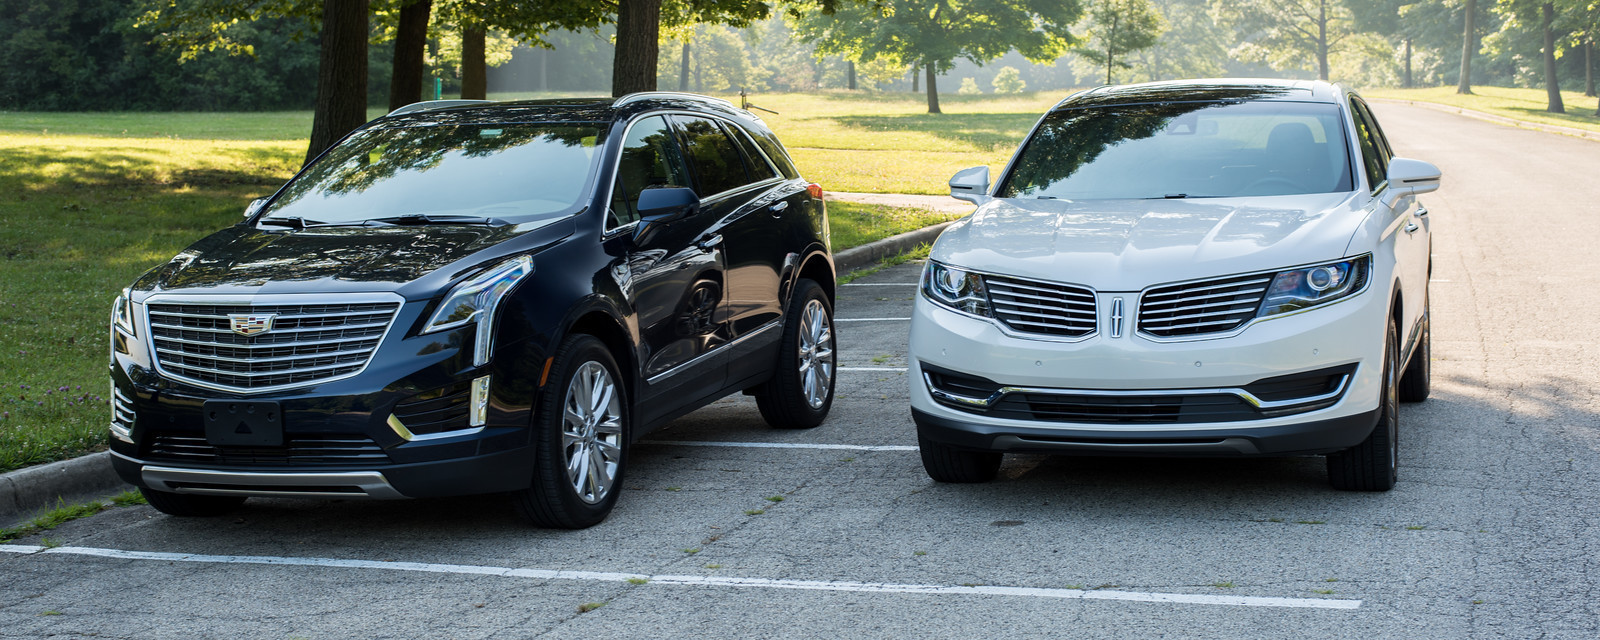 Lincoln Town Car 2016 >> 2017 Cadillac XT5 versus 2016 Lincoln MKX - Chicago Tribune